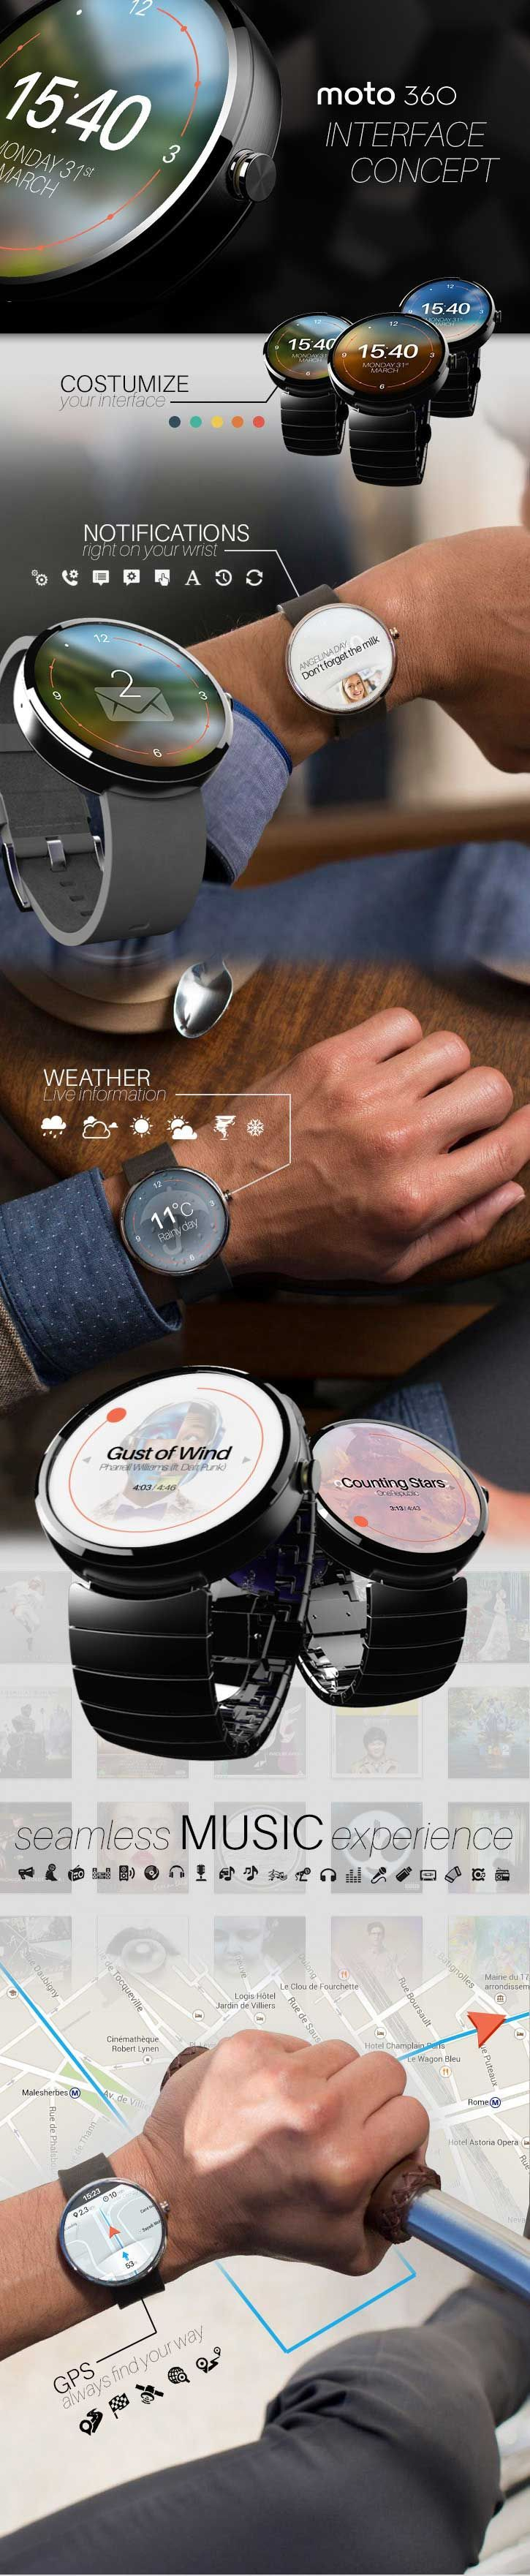 Apple watch!? Forget it! The Moto 360 is the watch that will transform the wearable tech market. Check it out here. #spon #FutureTech